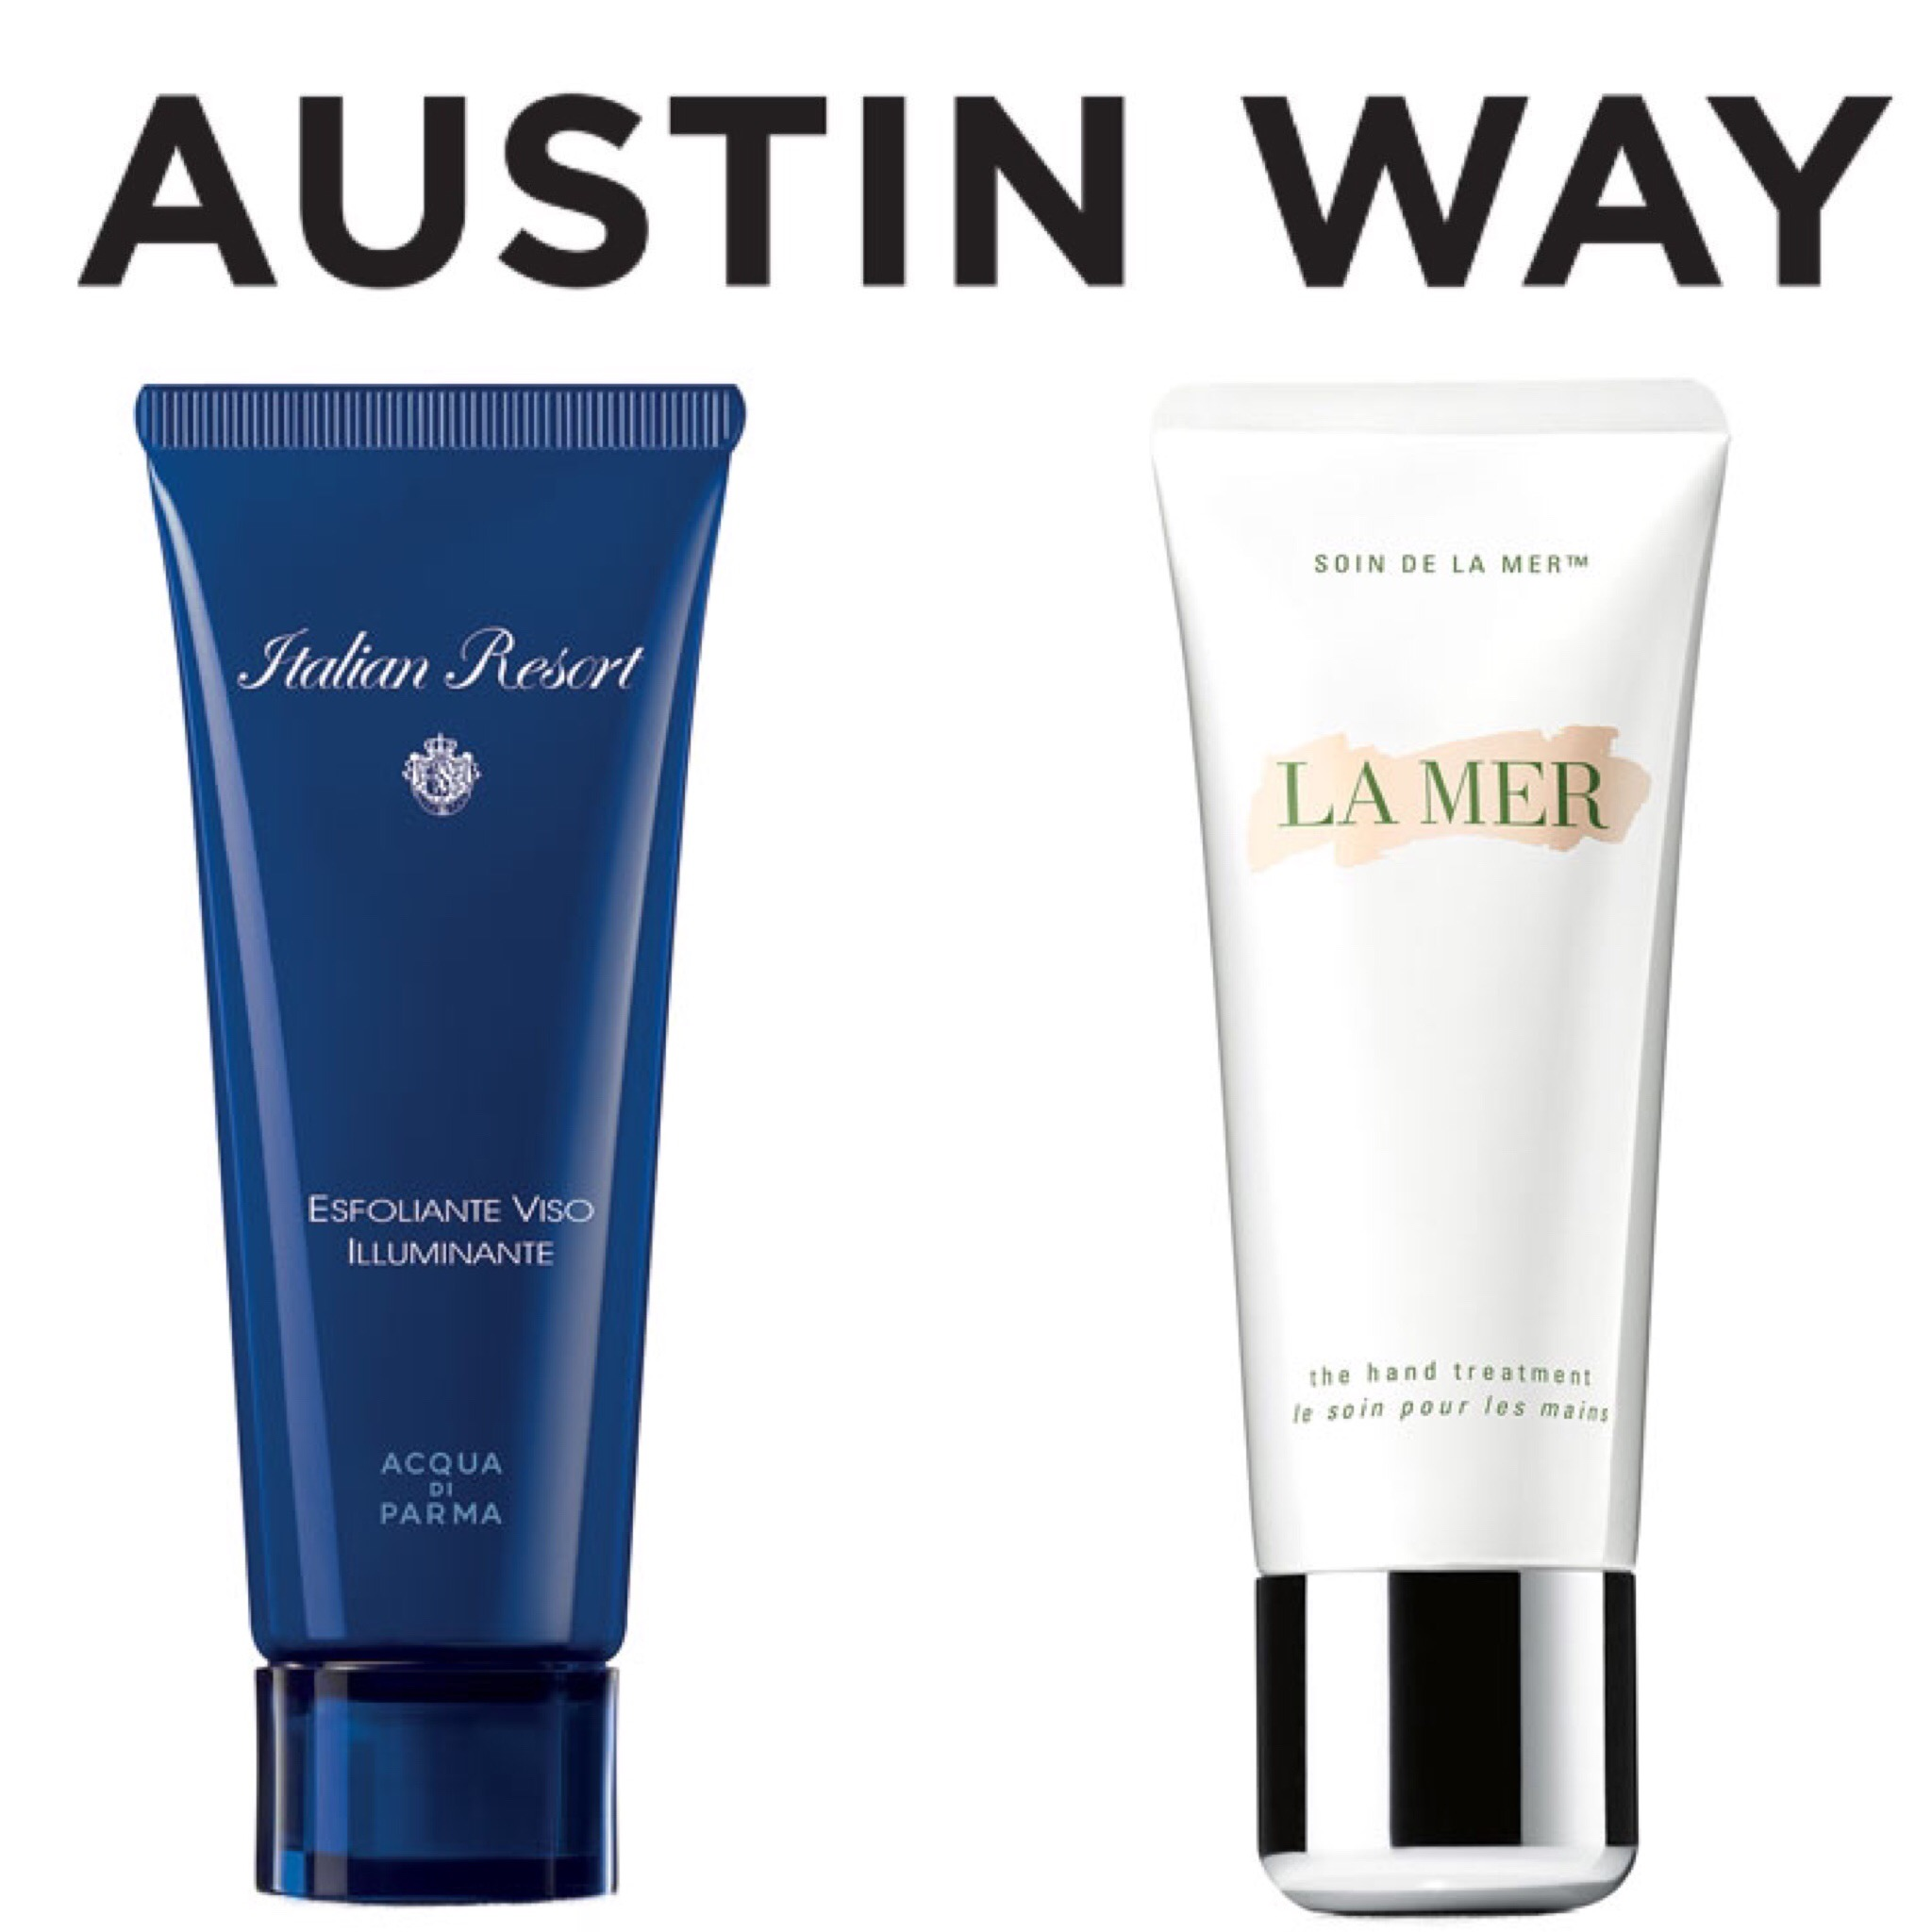 https://austinway.com/spa-products-to-use-at-home-during-the-holidays